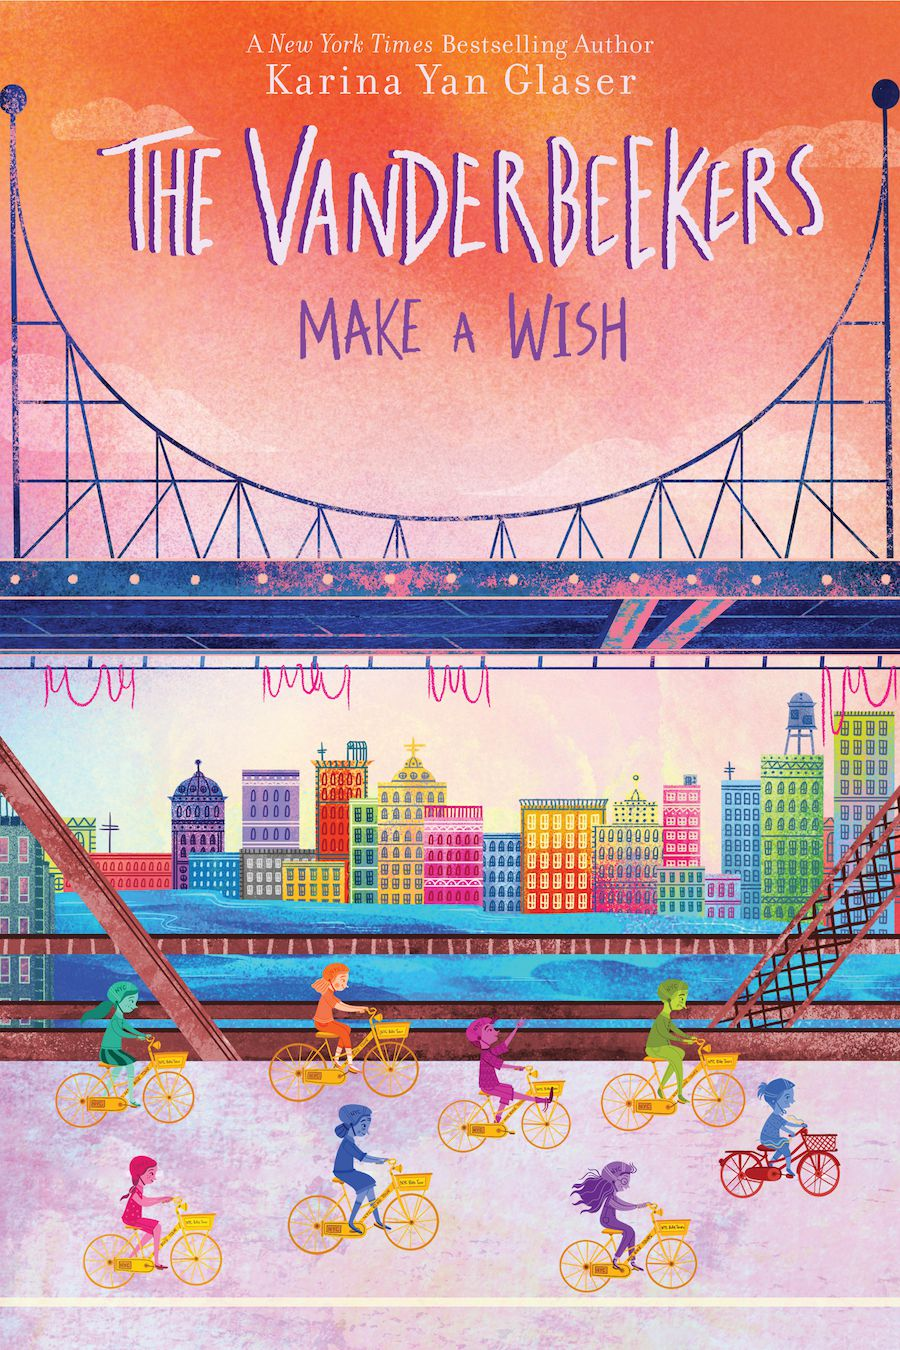 Book cover of The Vanderbeekers Make A Wish by Karina Yan Glaser.